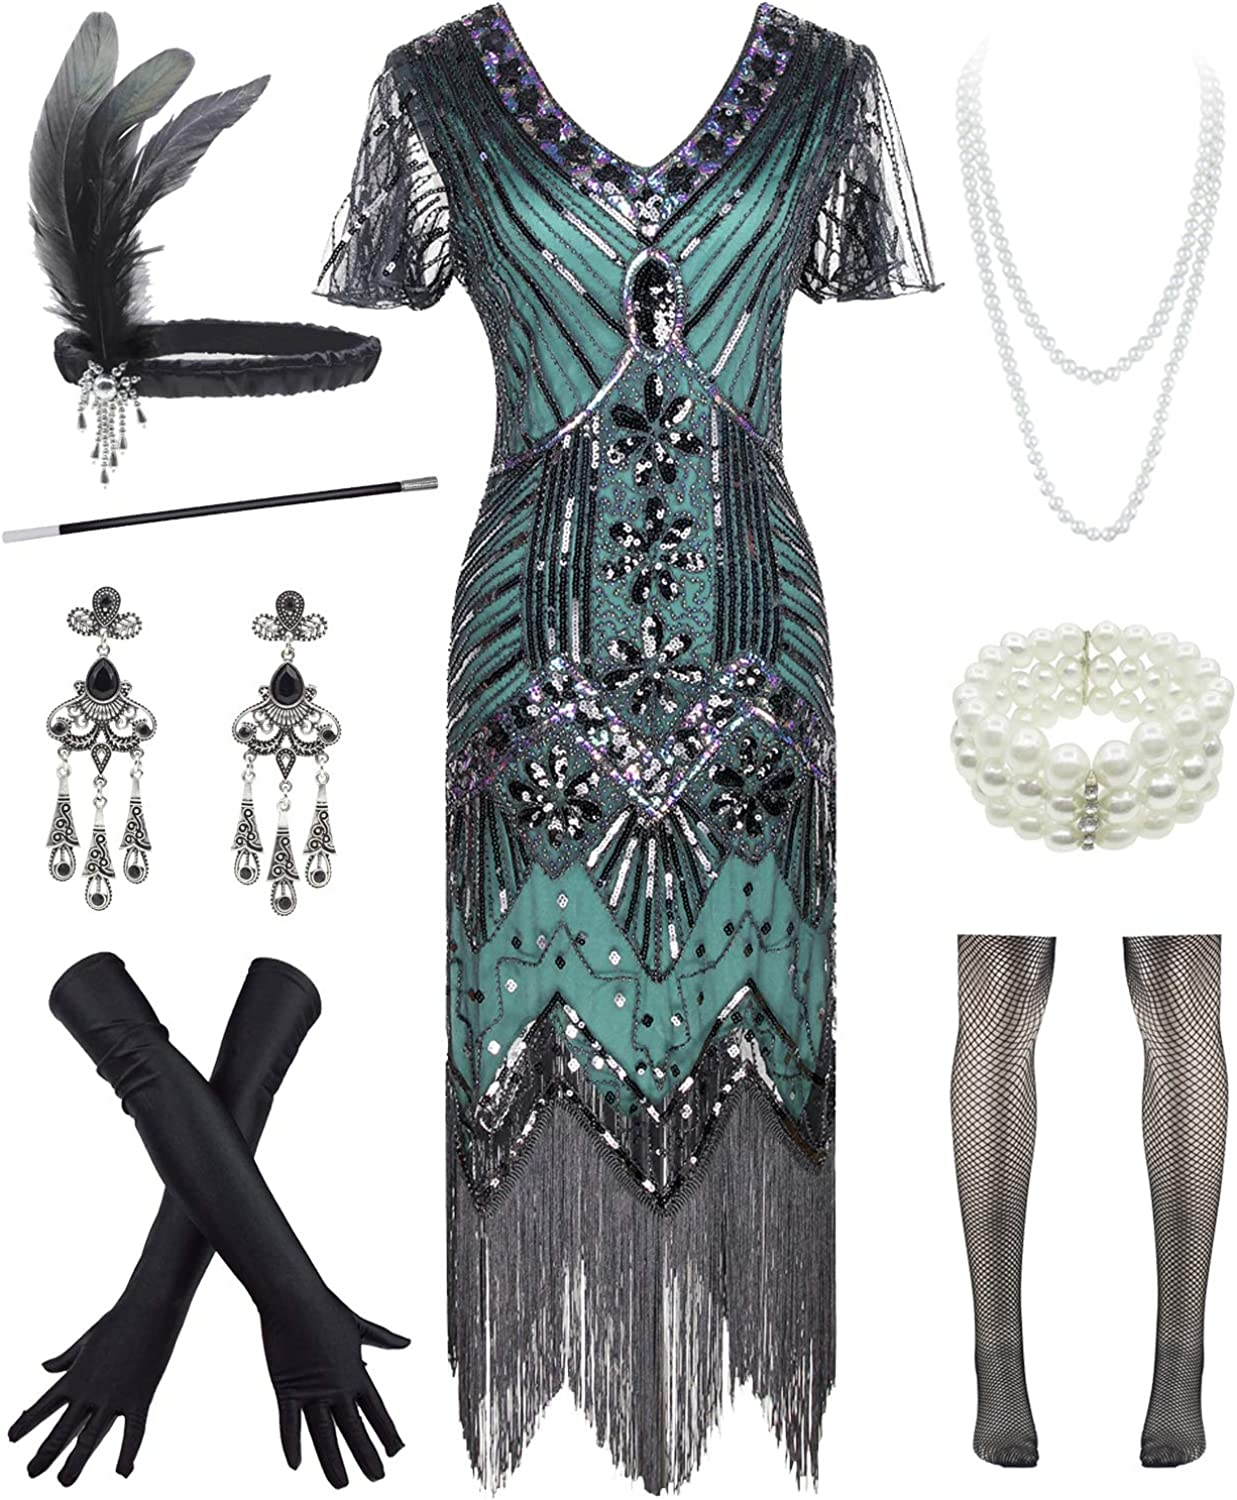 Womens 5% OFF Vintage Lace Fringed Gatsby 20s Cocktail Sale Special Price 1920s Dress with